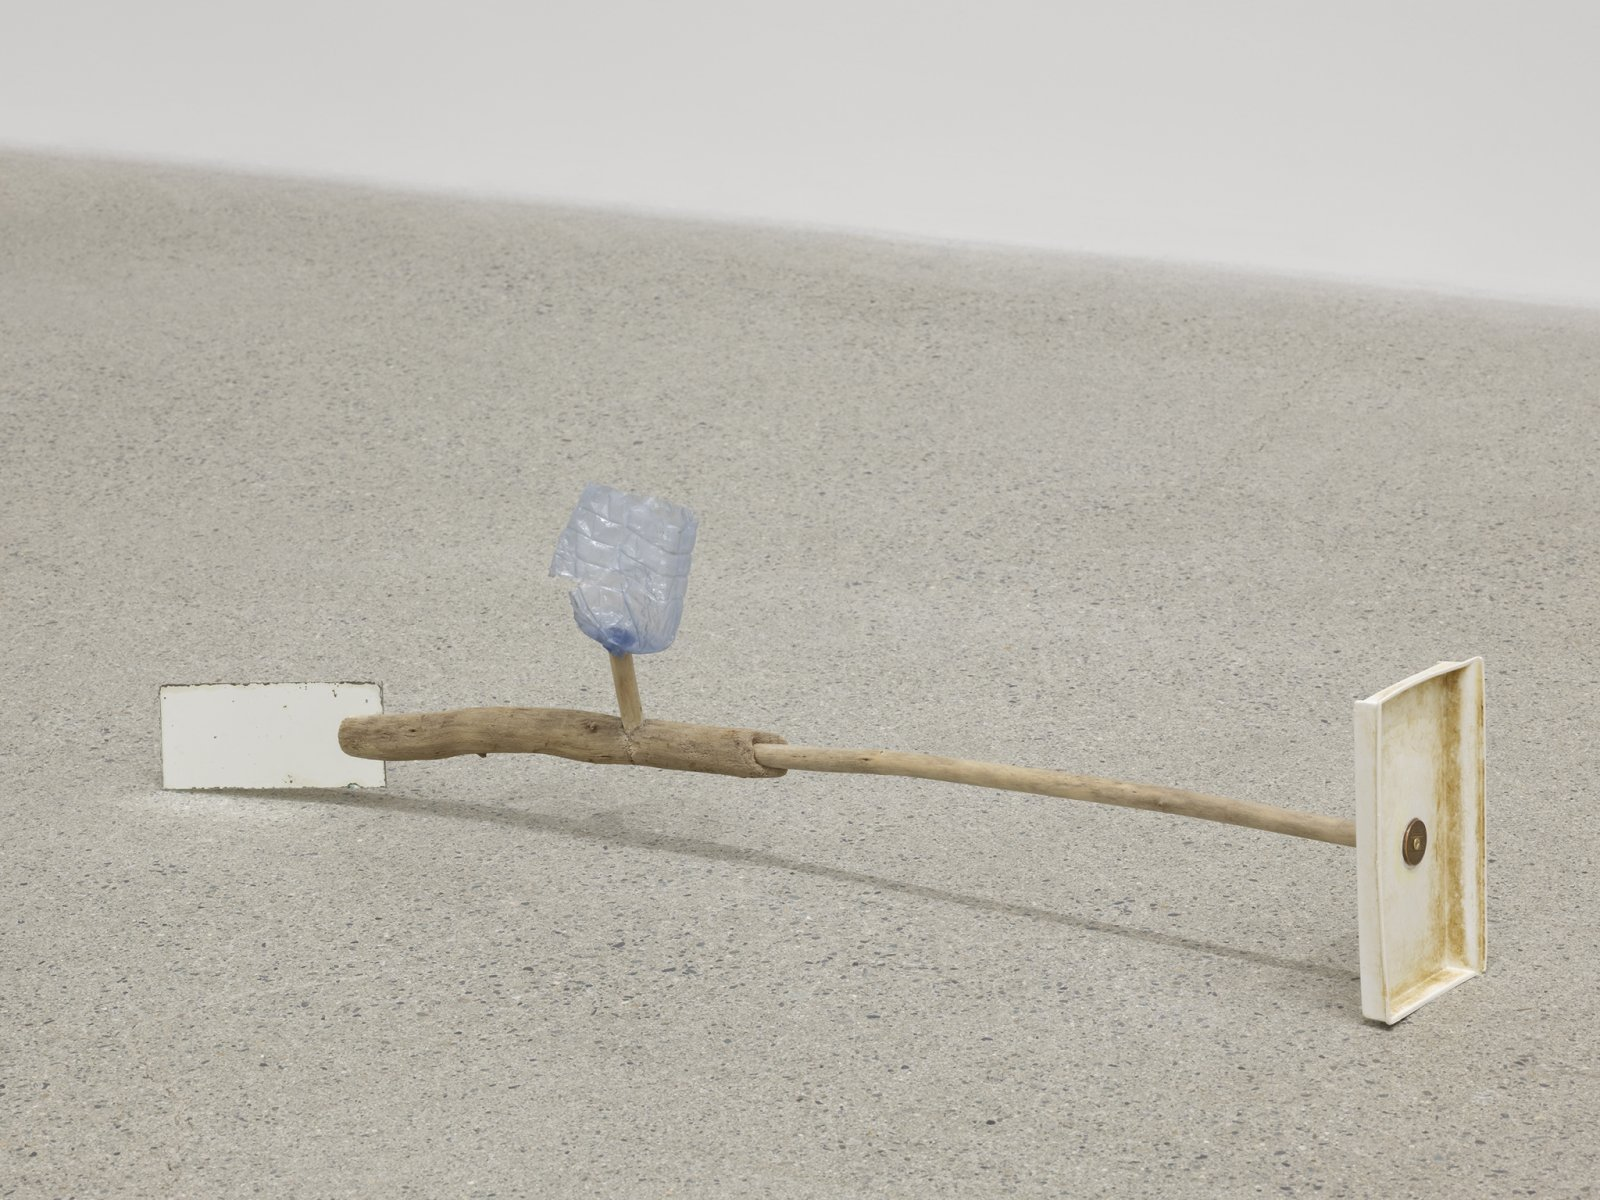 Ashes Withyman, Under a mouldy sky (spent tire, slab of stone, torn barbed wire fence), 2019, branches, margarine container base, penny, portion of water bottle, mirror, 7 x 26 x 4 in. (18 x 66 x 10 cm) by Ashes Withyman